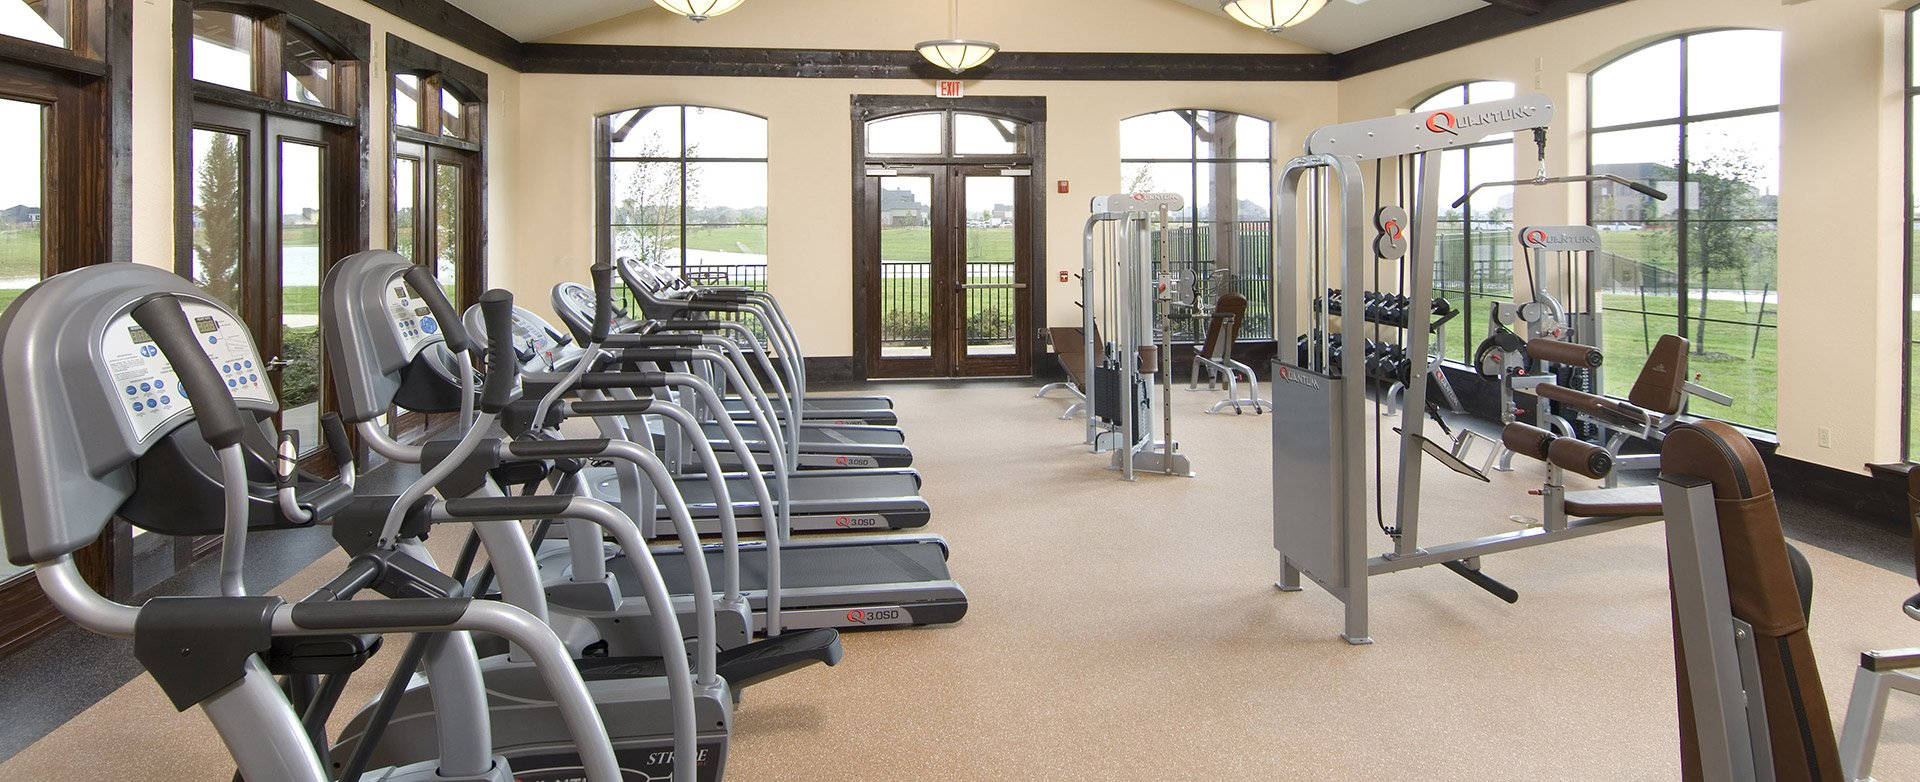 Luxury amenities and fitness room await you at Bella Terra